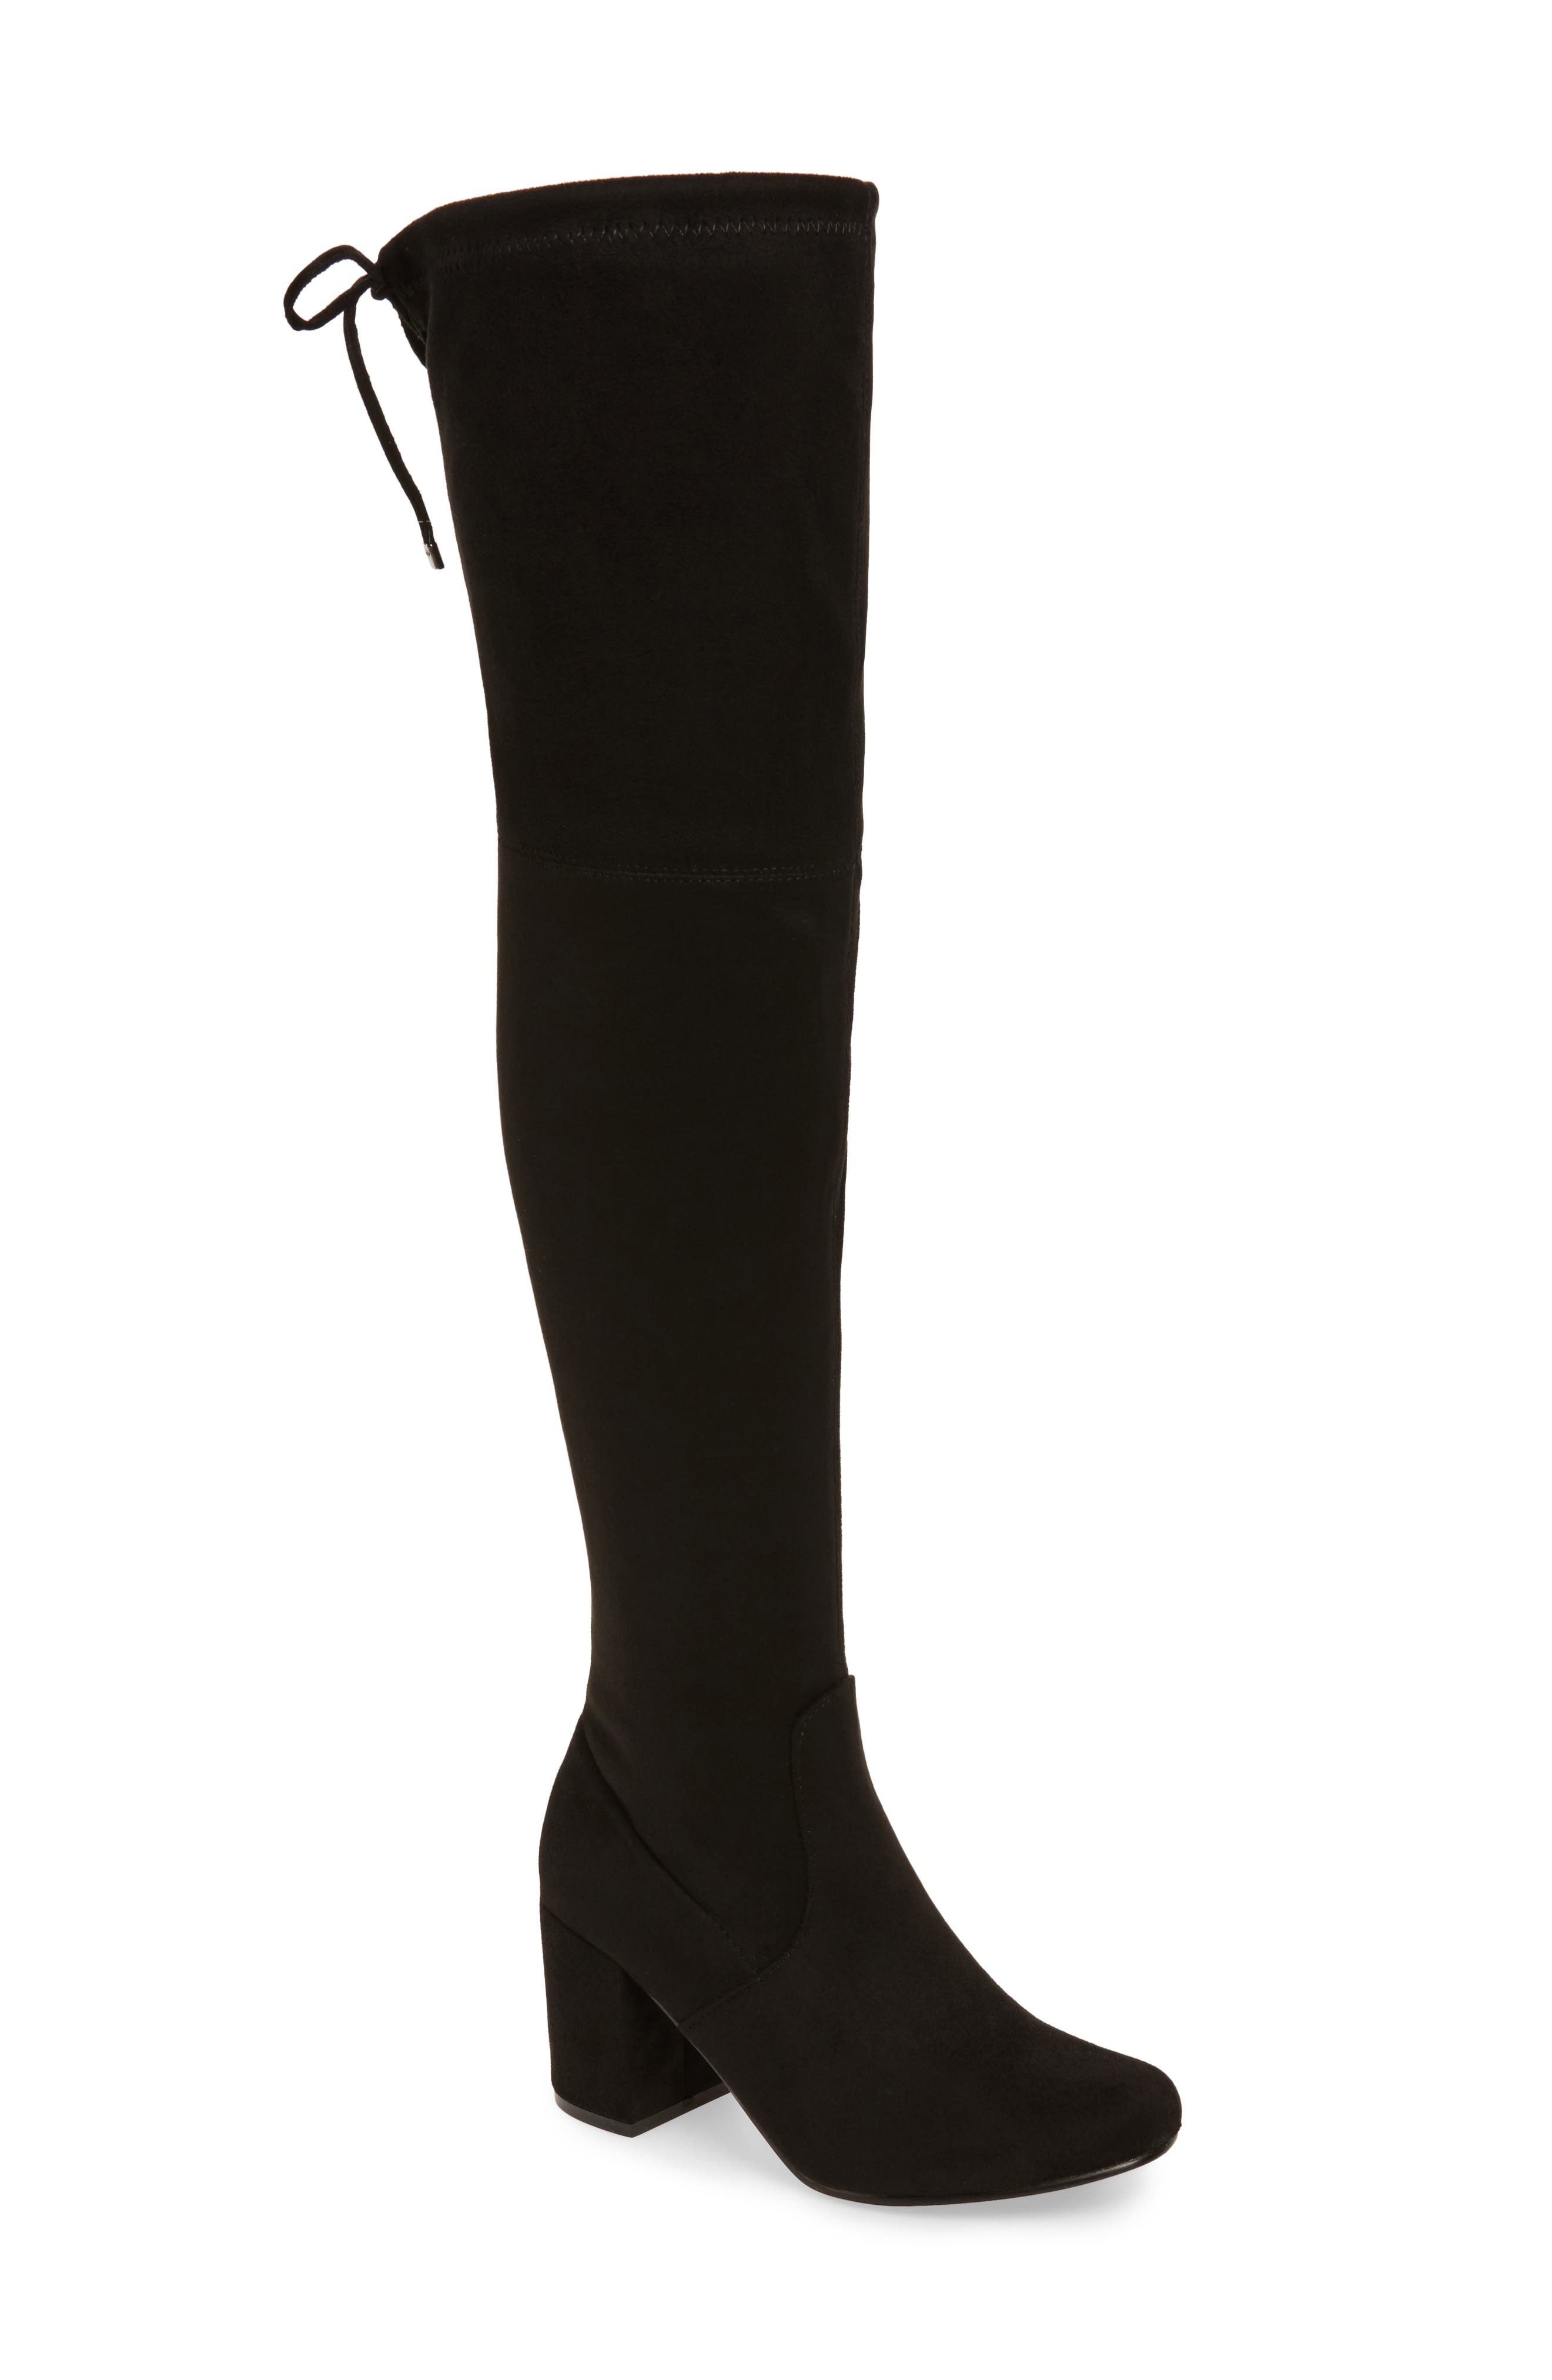 Heartbeat Over the Knee Boot,                             Main thumbnail 1, color,                             Black